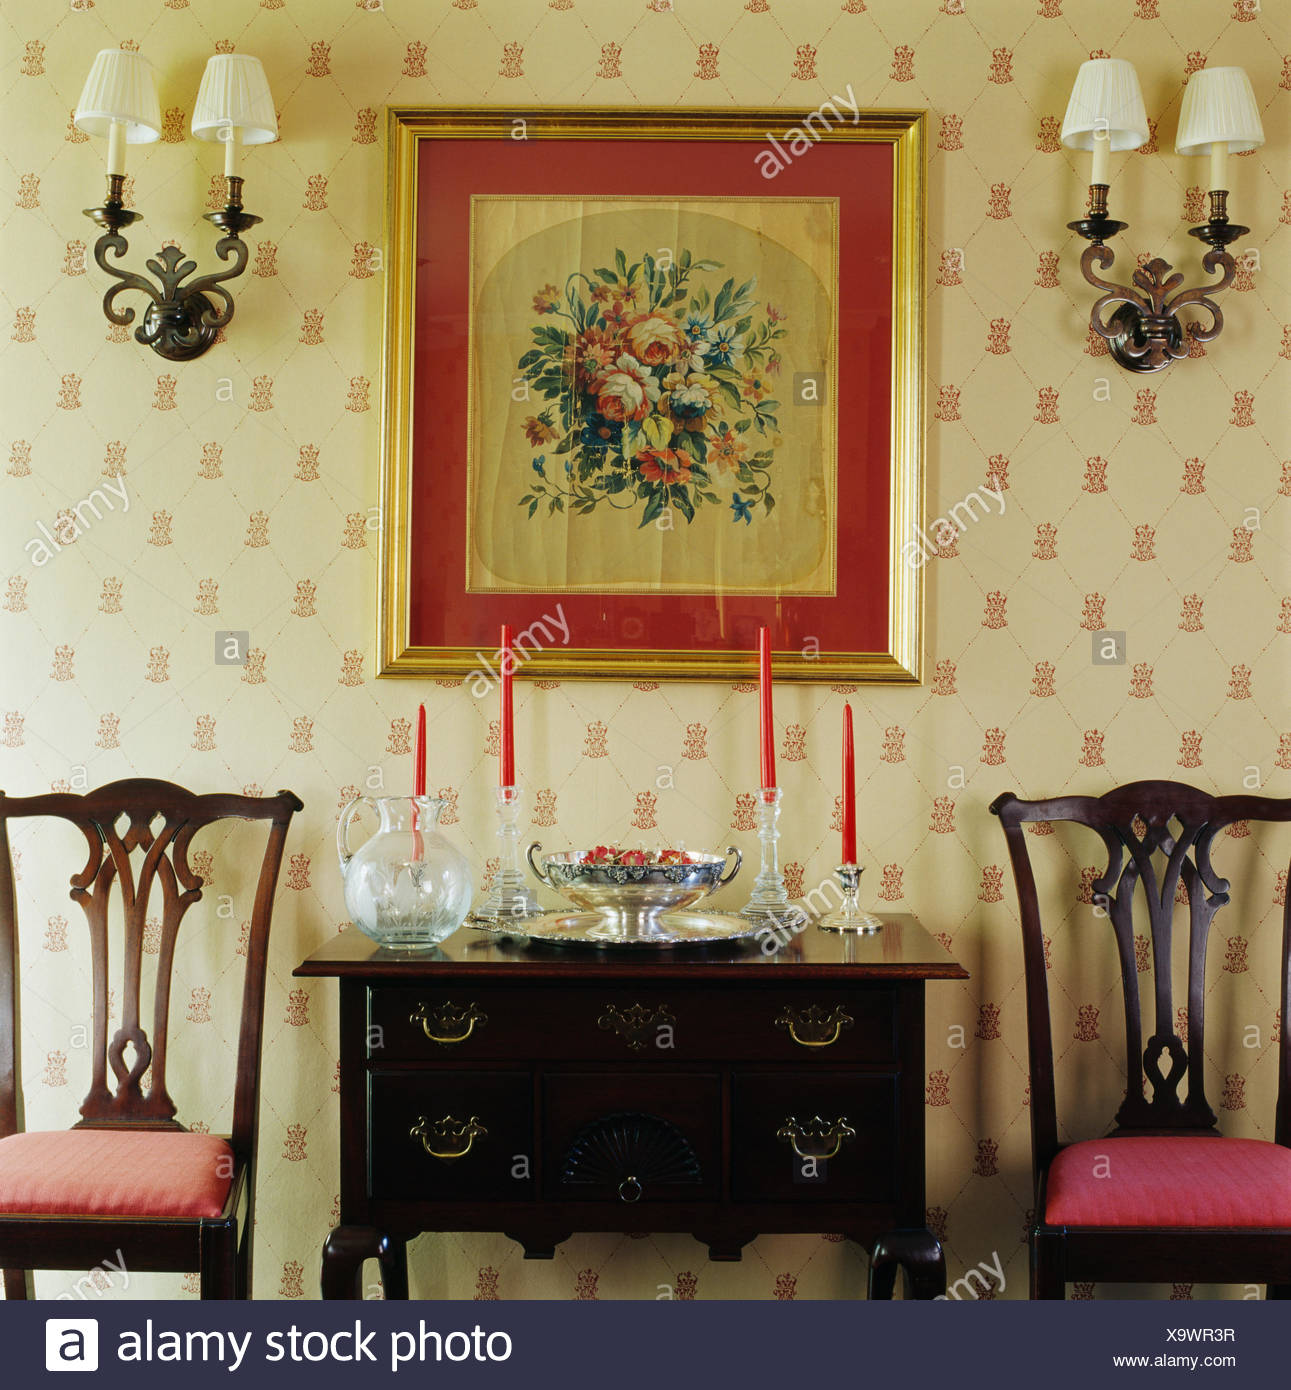 Wall Lights On Either Side Of Framed Floral Tapestry Above Antique Table  And Chairs In Dining Room With Patterned Wallpaper